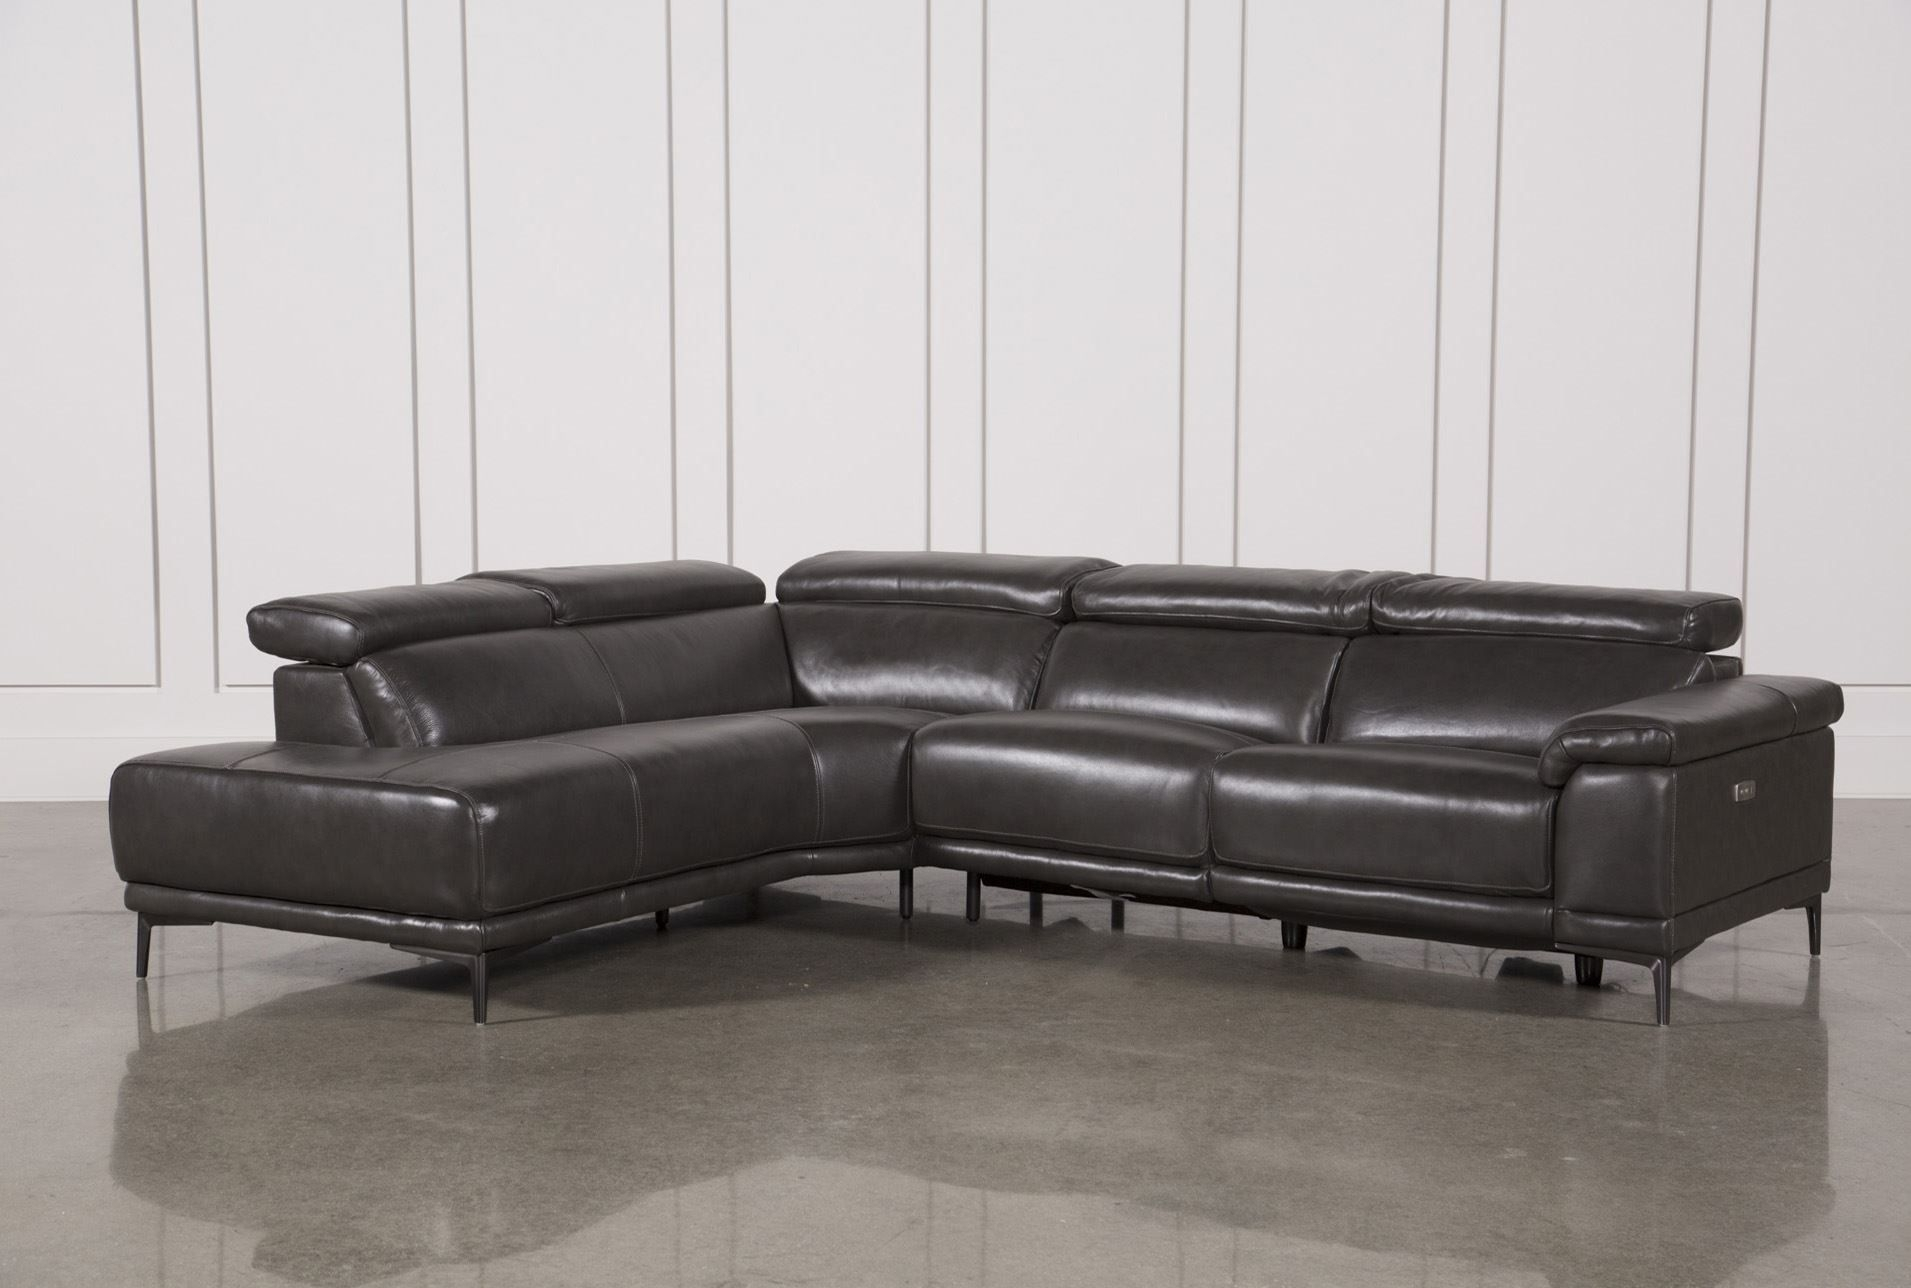 Tatum Dark Grey 2 Piece Sectional W/laf Chaise | Living Room Within Calder Grey 6 Piece Manual Reclining Sectionals (View 6 of 25)